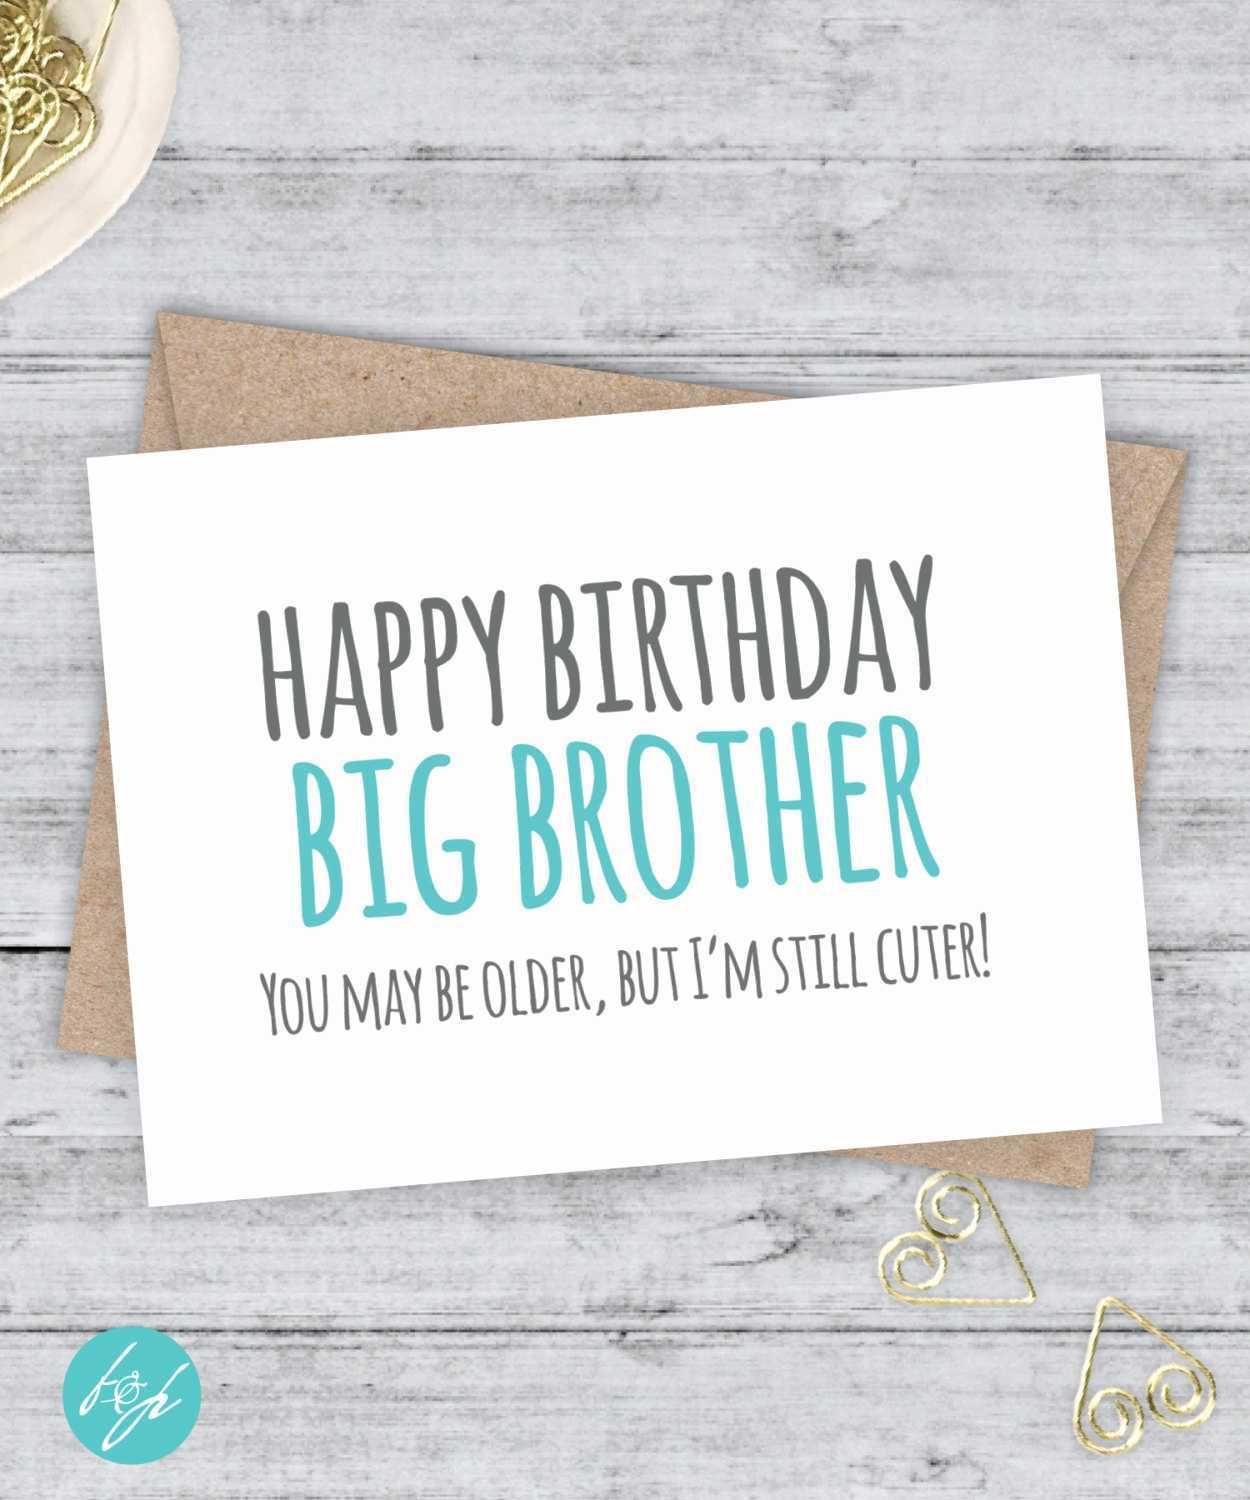 happy birthday card for brother from sister ; funny-brother-birthday-cards-inspirational-funny-birthday-card-funny-brother-birthday-sister-of-funny-brother-birthday-cards